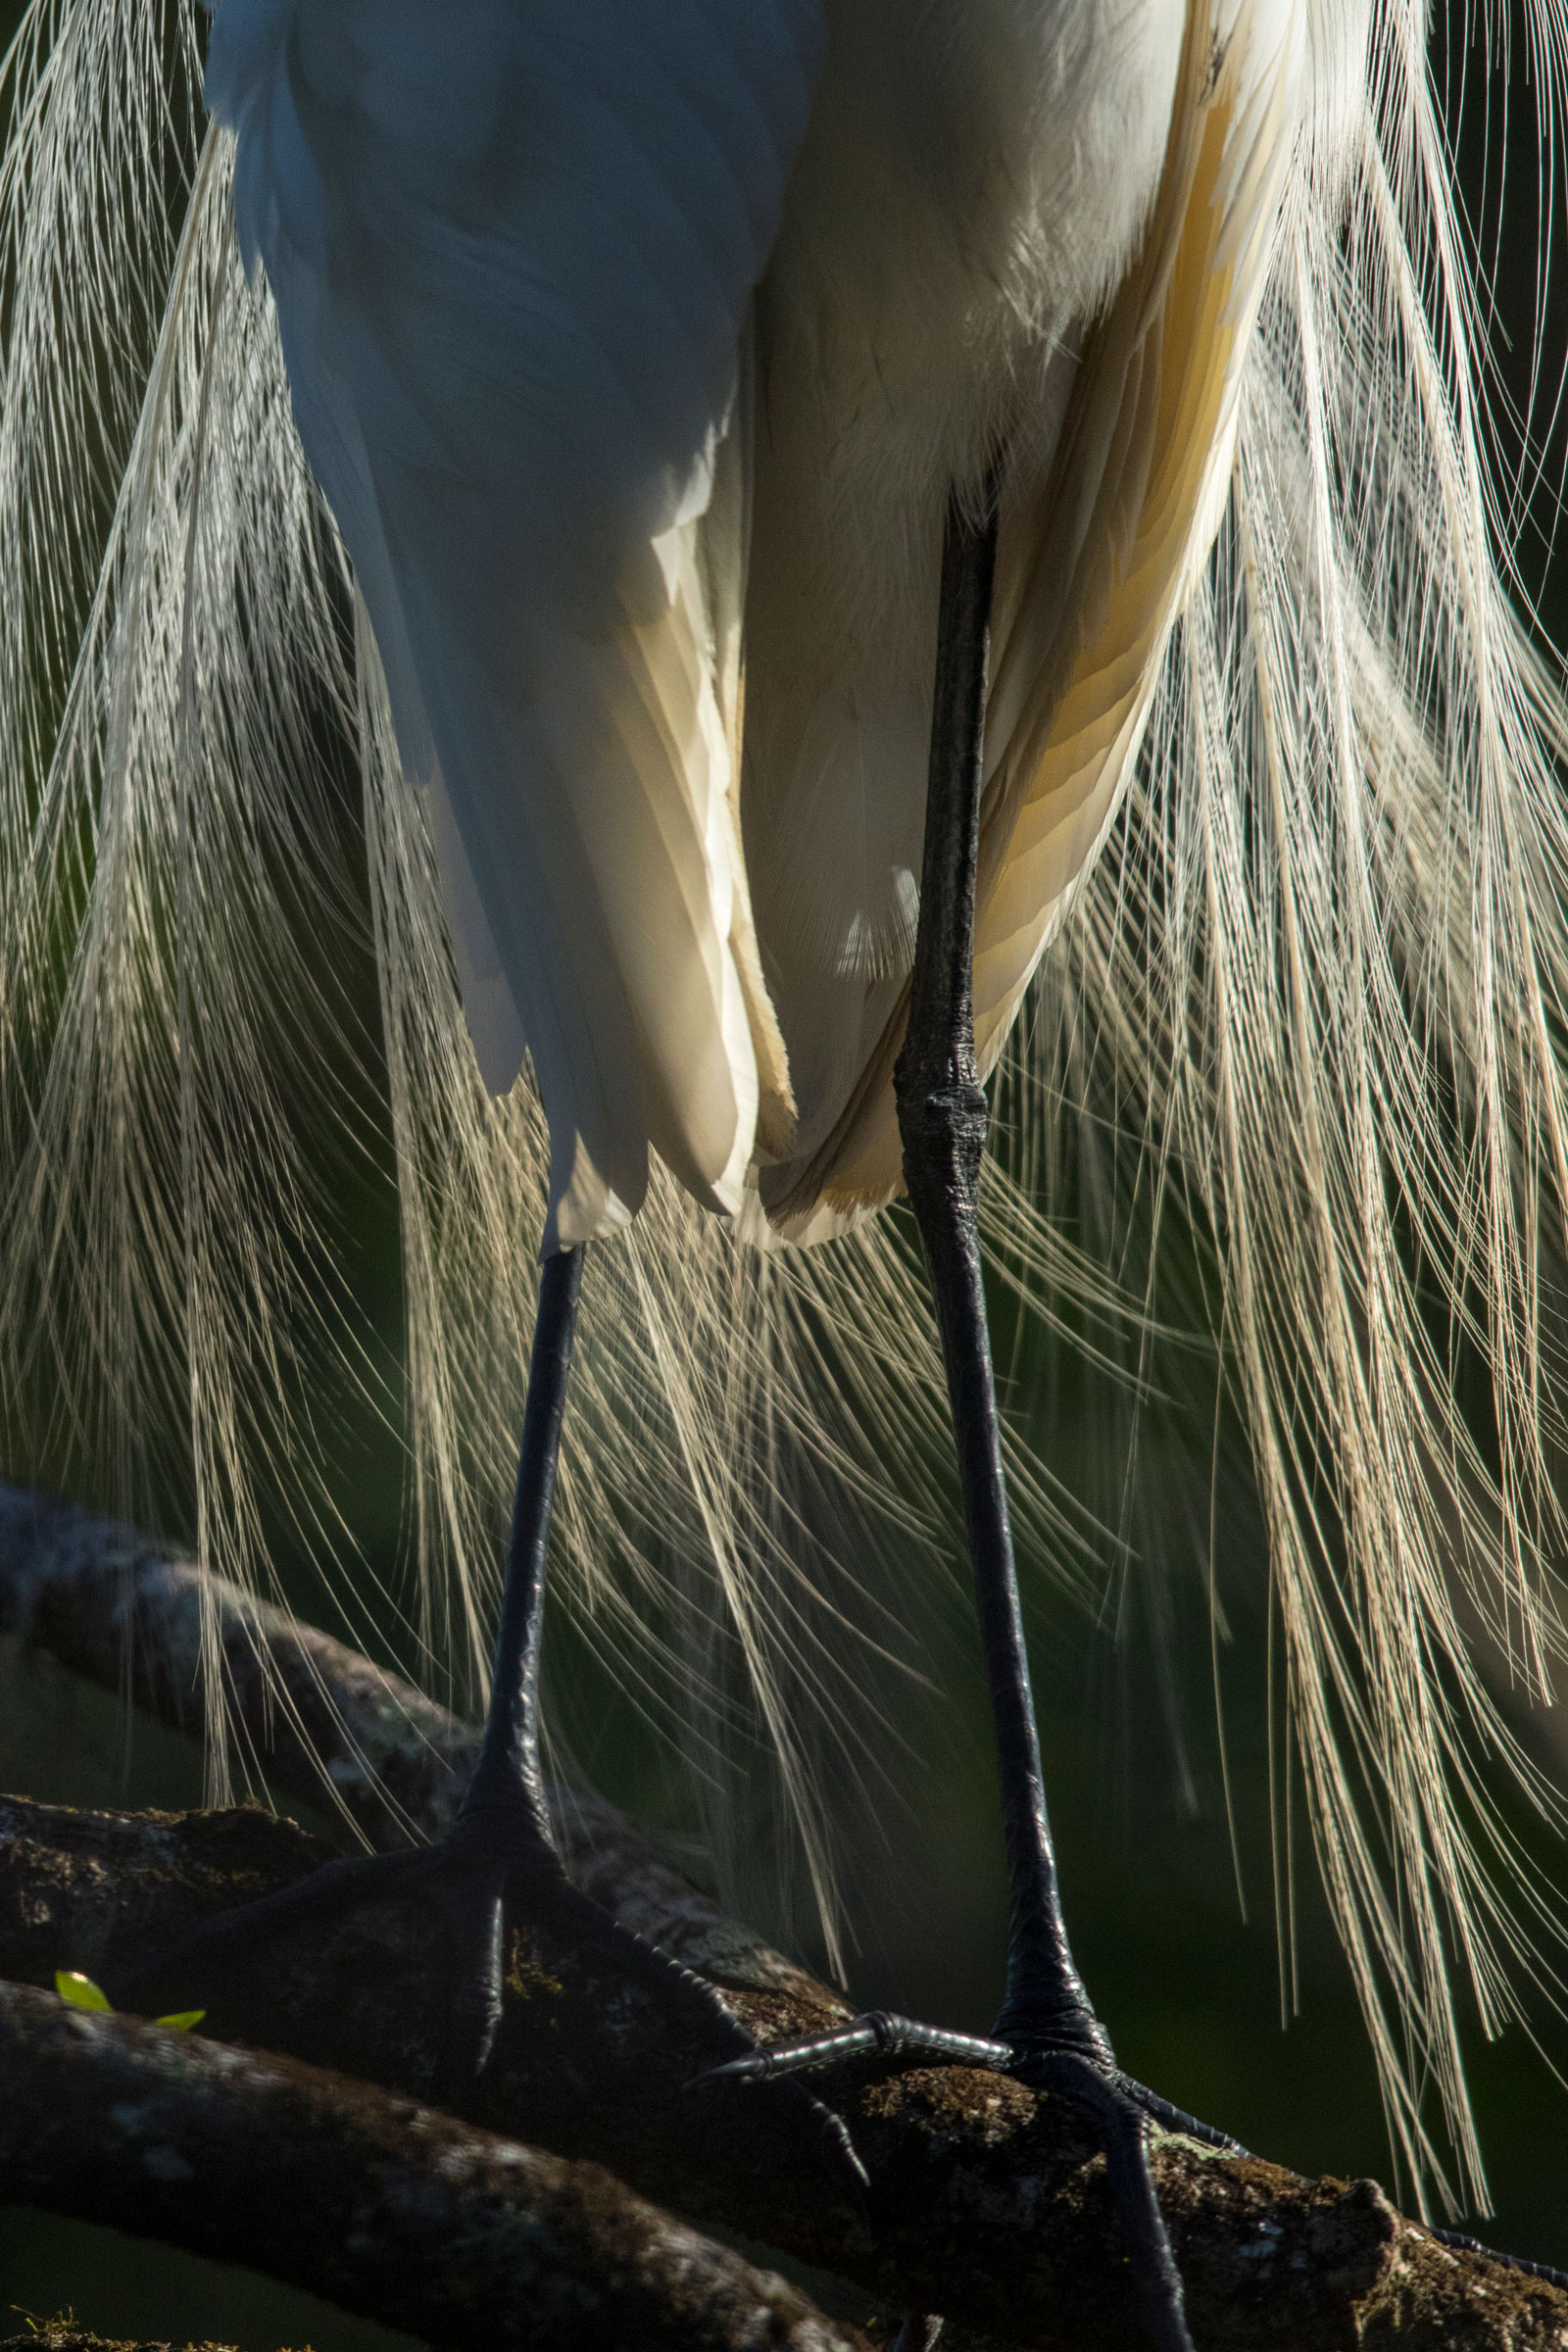 A Great Egret in breeding plumage is backlit by a rising sun in Audubon's Corkscrew Swamp Sanctuary. Birds come from around the watershed to forage for fish in the pockets of deep water that form here during the dry season. Mac Stone